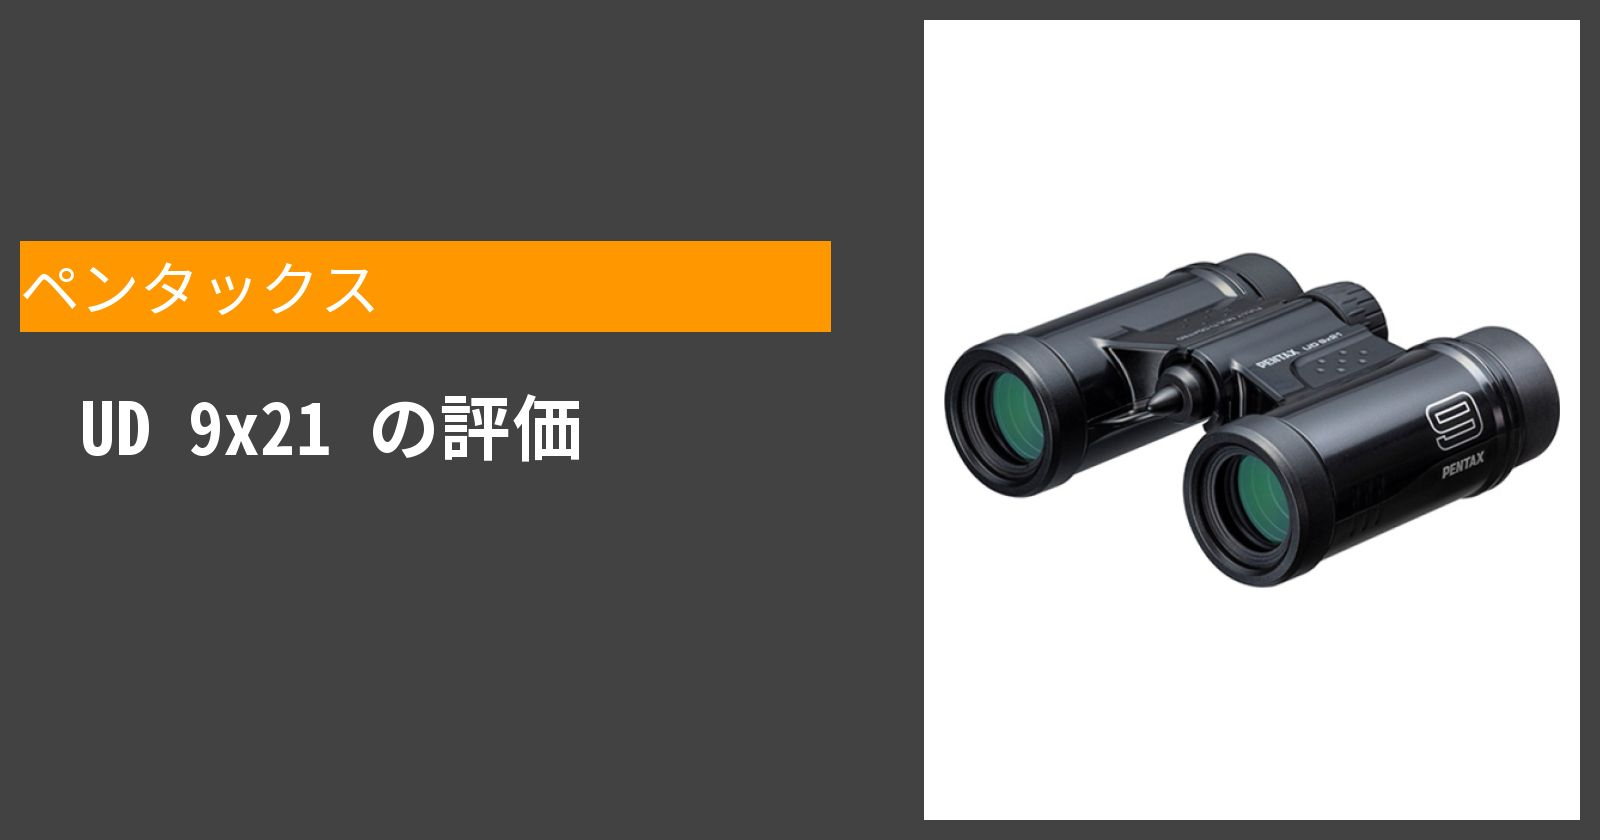 UD 9x21を徹底評価